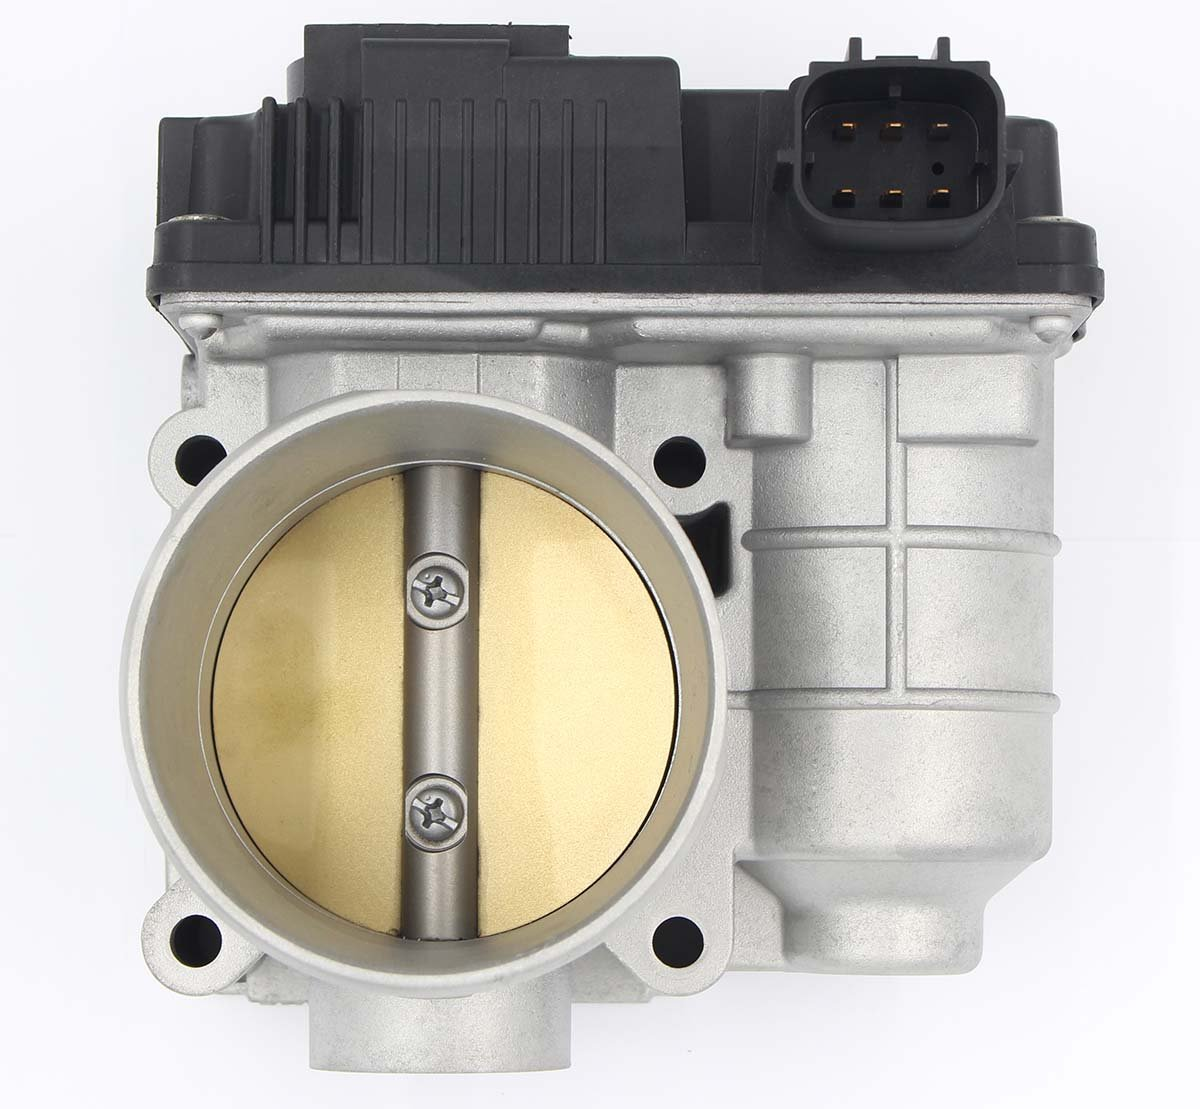 GooDeal Throttle Body with Sensors 16119-AE013 for Nissan Sentra Altima 2.5L